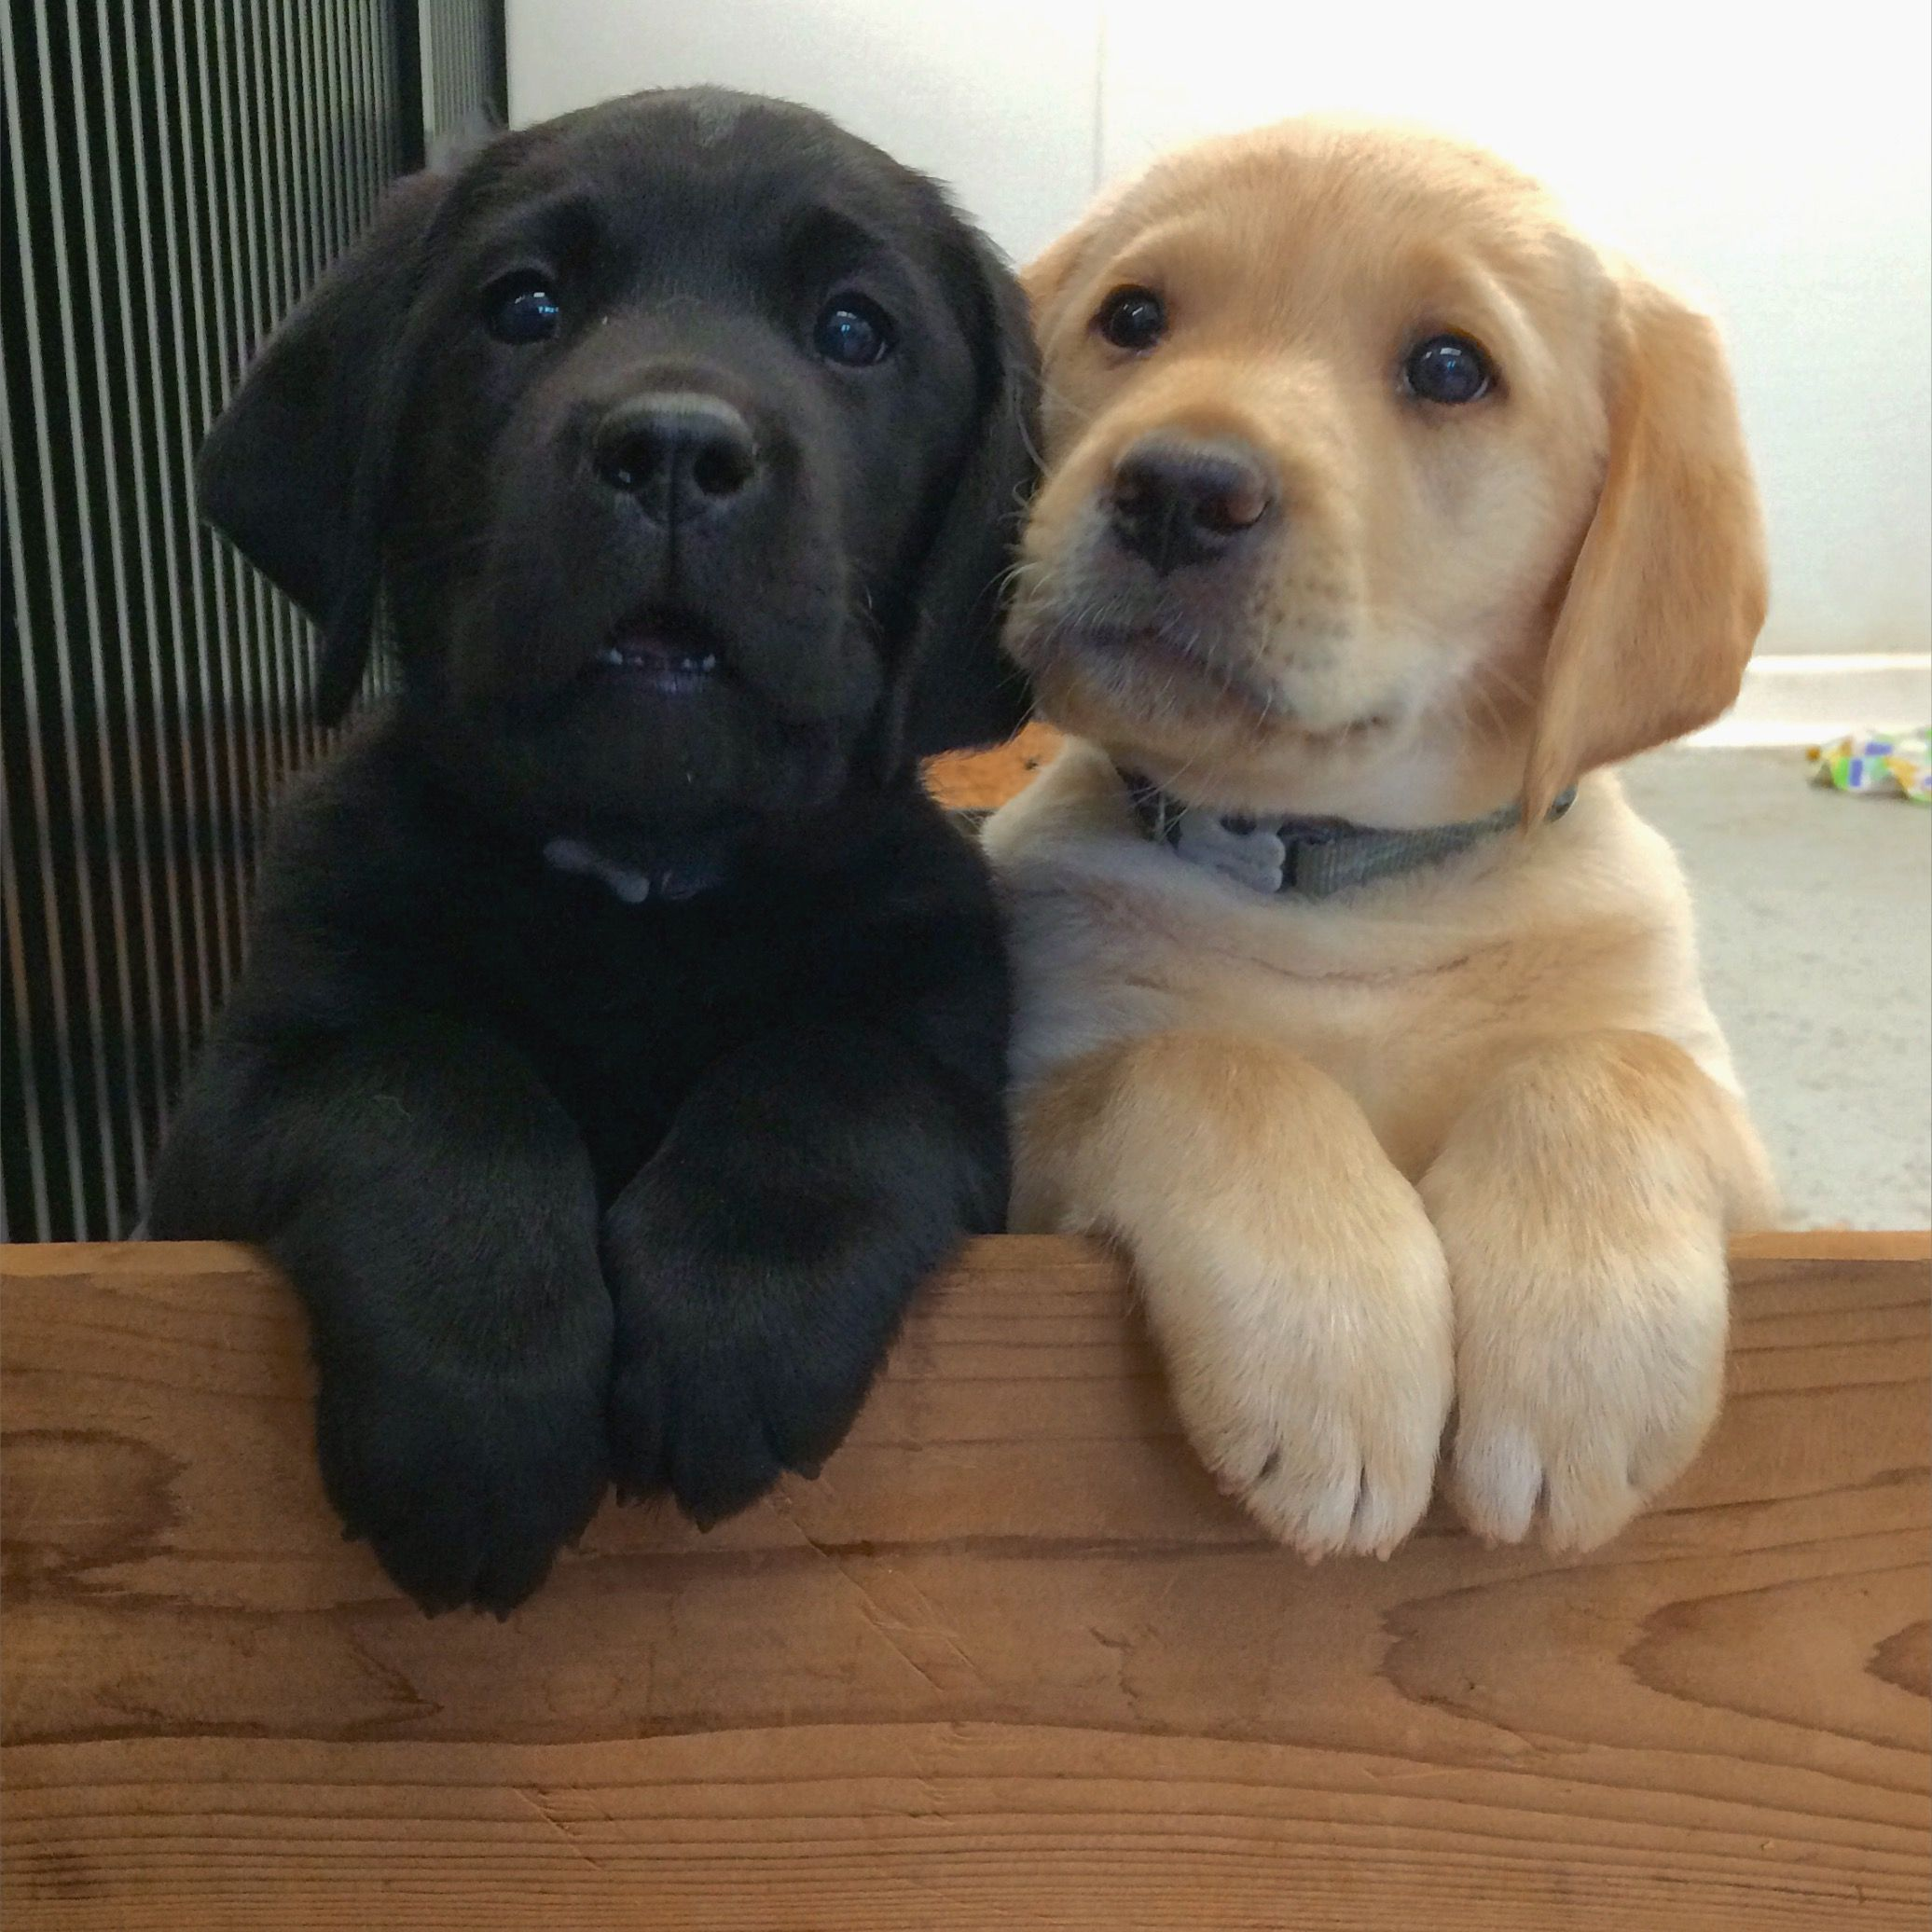 Adorable Lab Puppies At Warrior Canine Connection In Md Cute Labrador Puppies Lab Puppies Cute Dogs